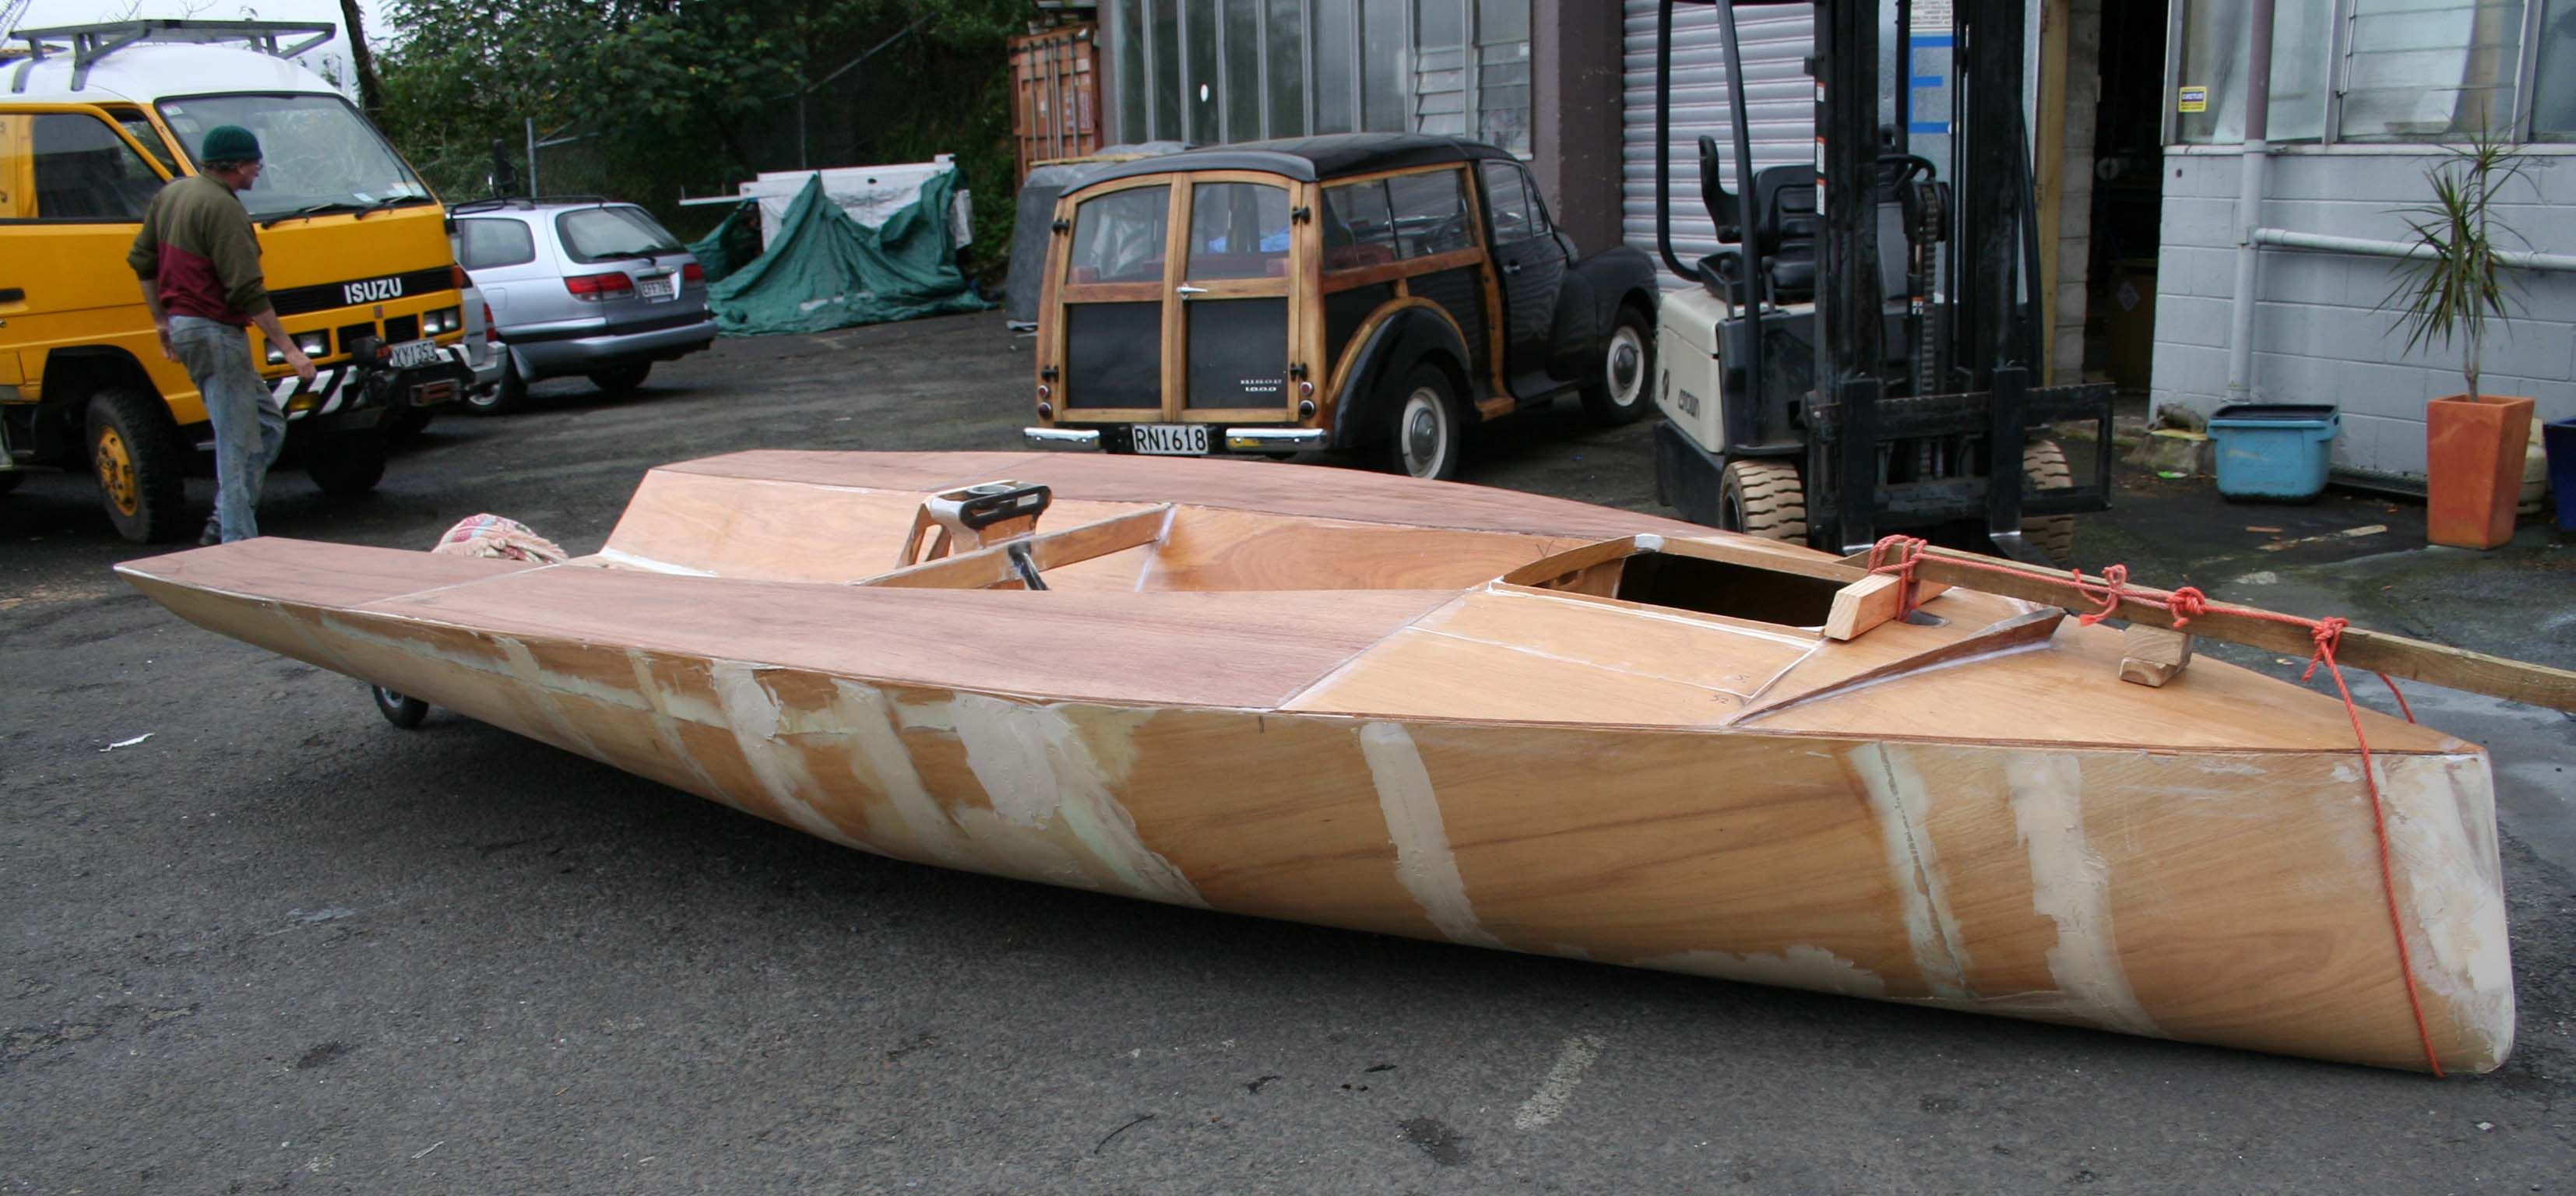 Plywood-Stitch-And-Glue-Boat-Plans-2.jpg (3308×1536)   Wooden boats   Pinterest   Boating, Boat ...